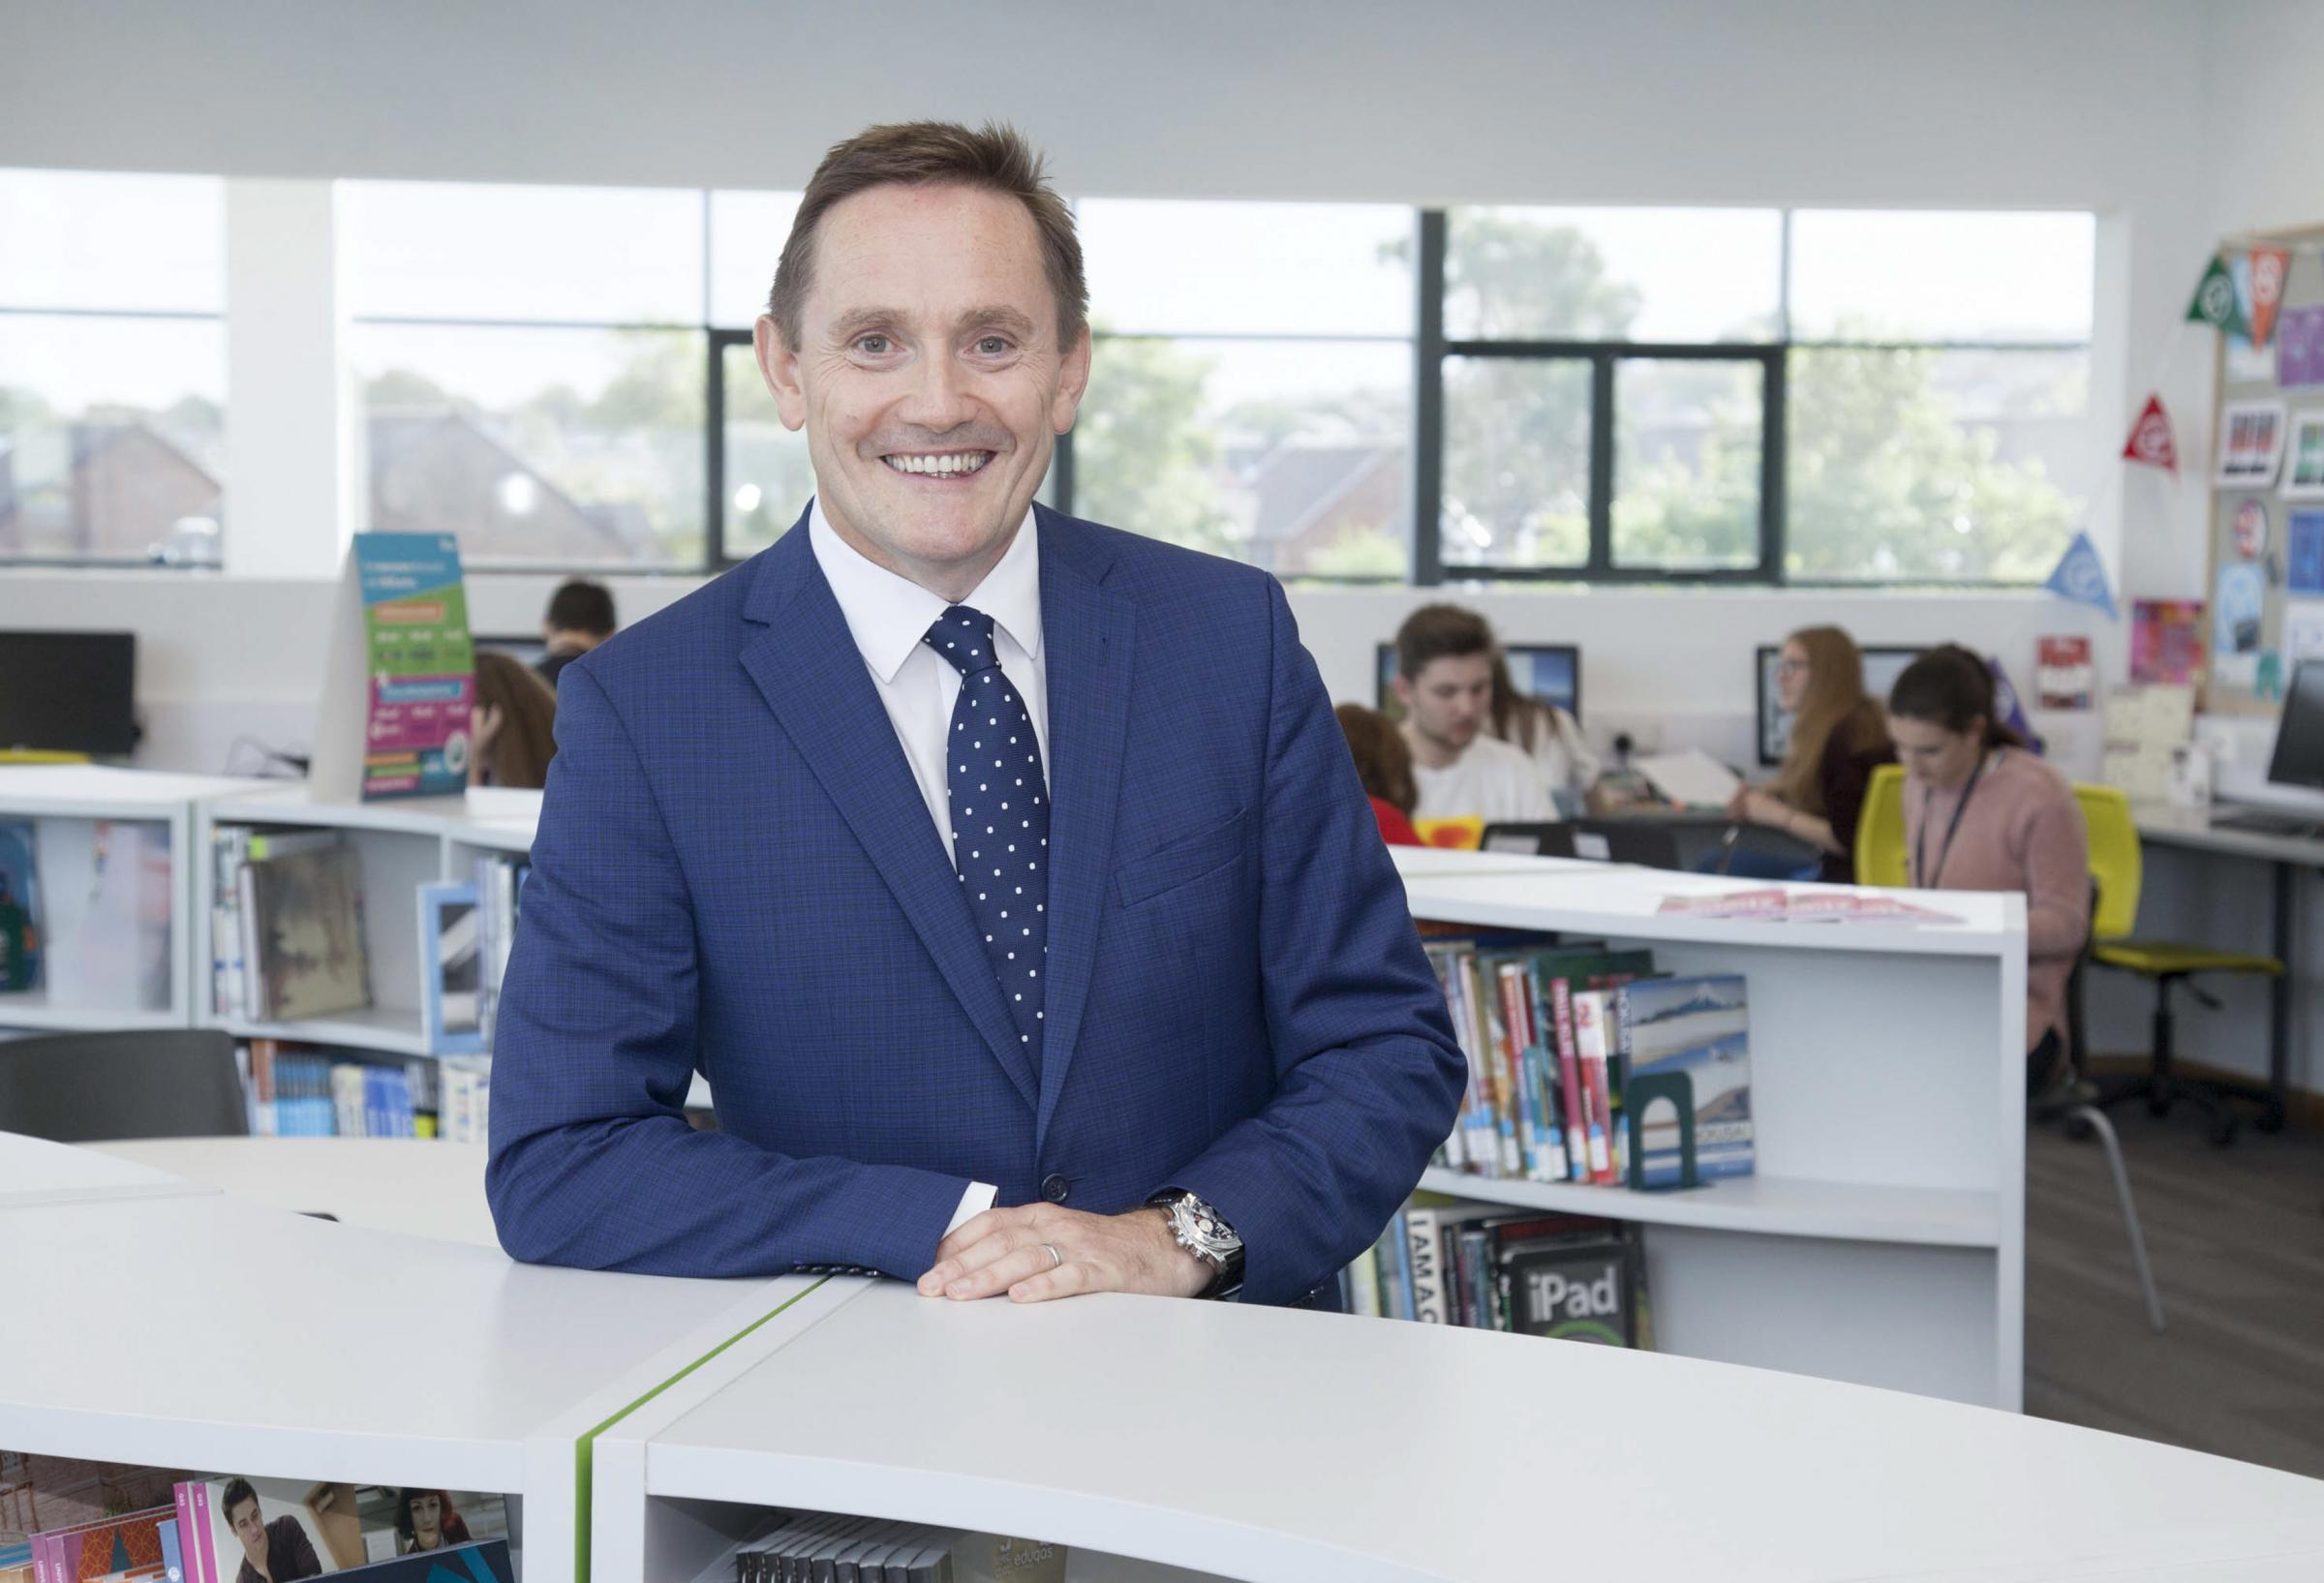 Coleg Cambria's Chief Executive David Jones